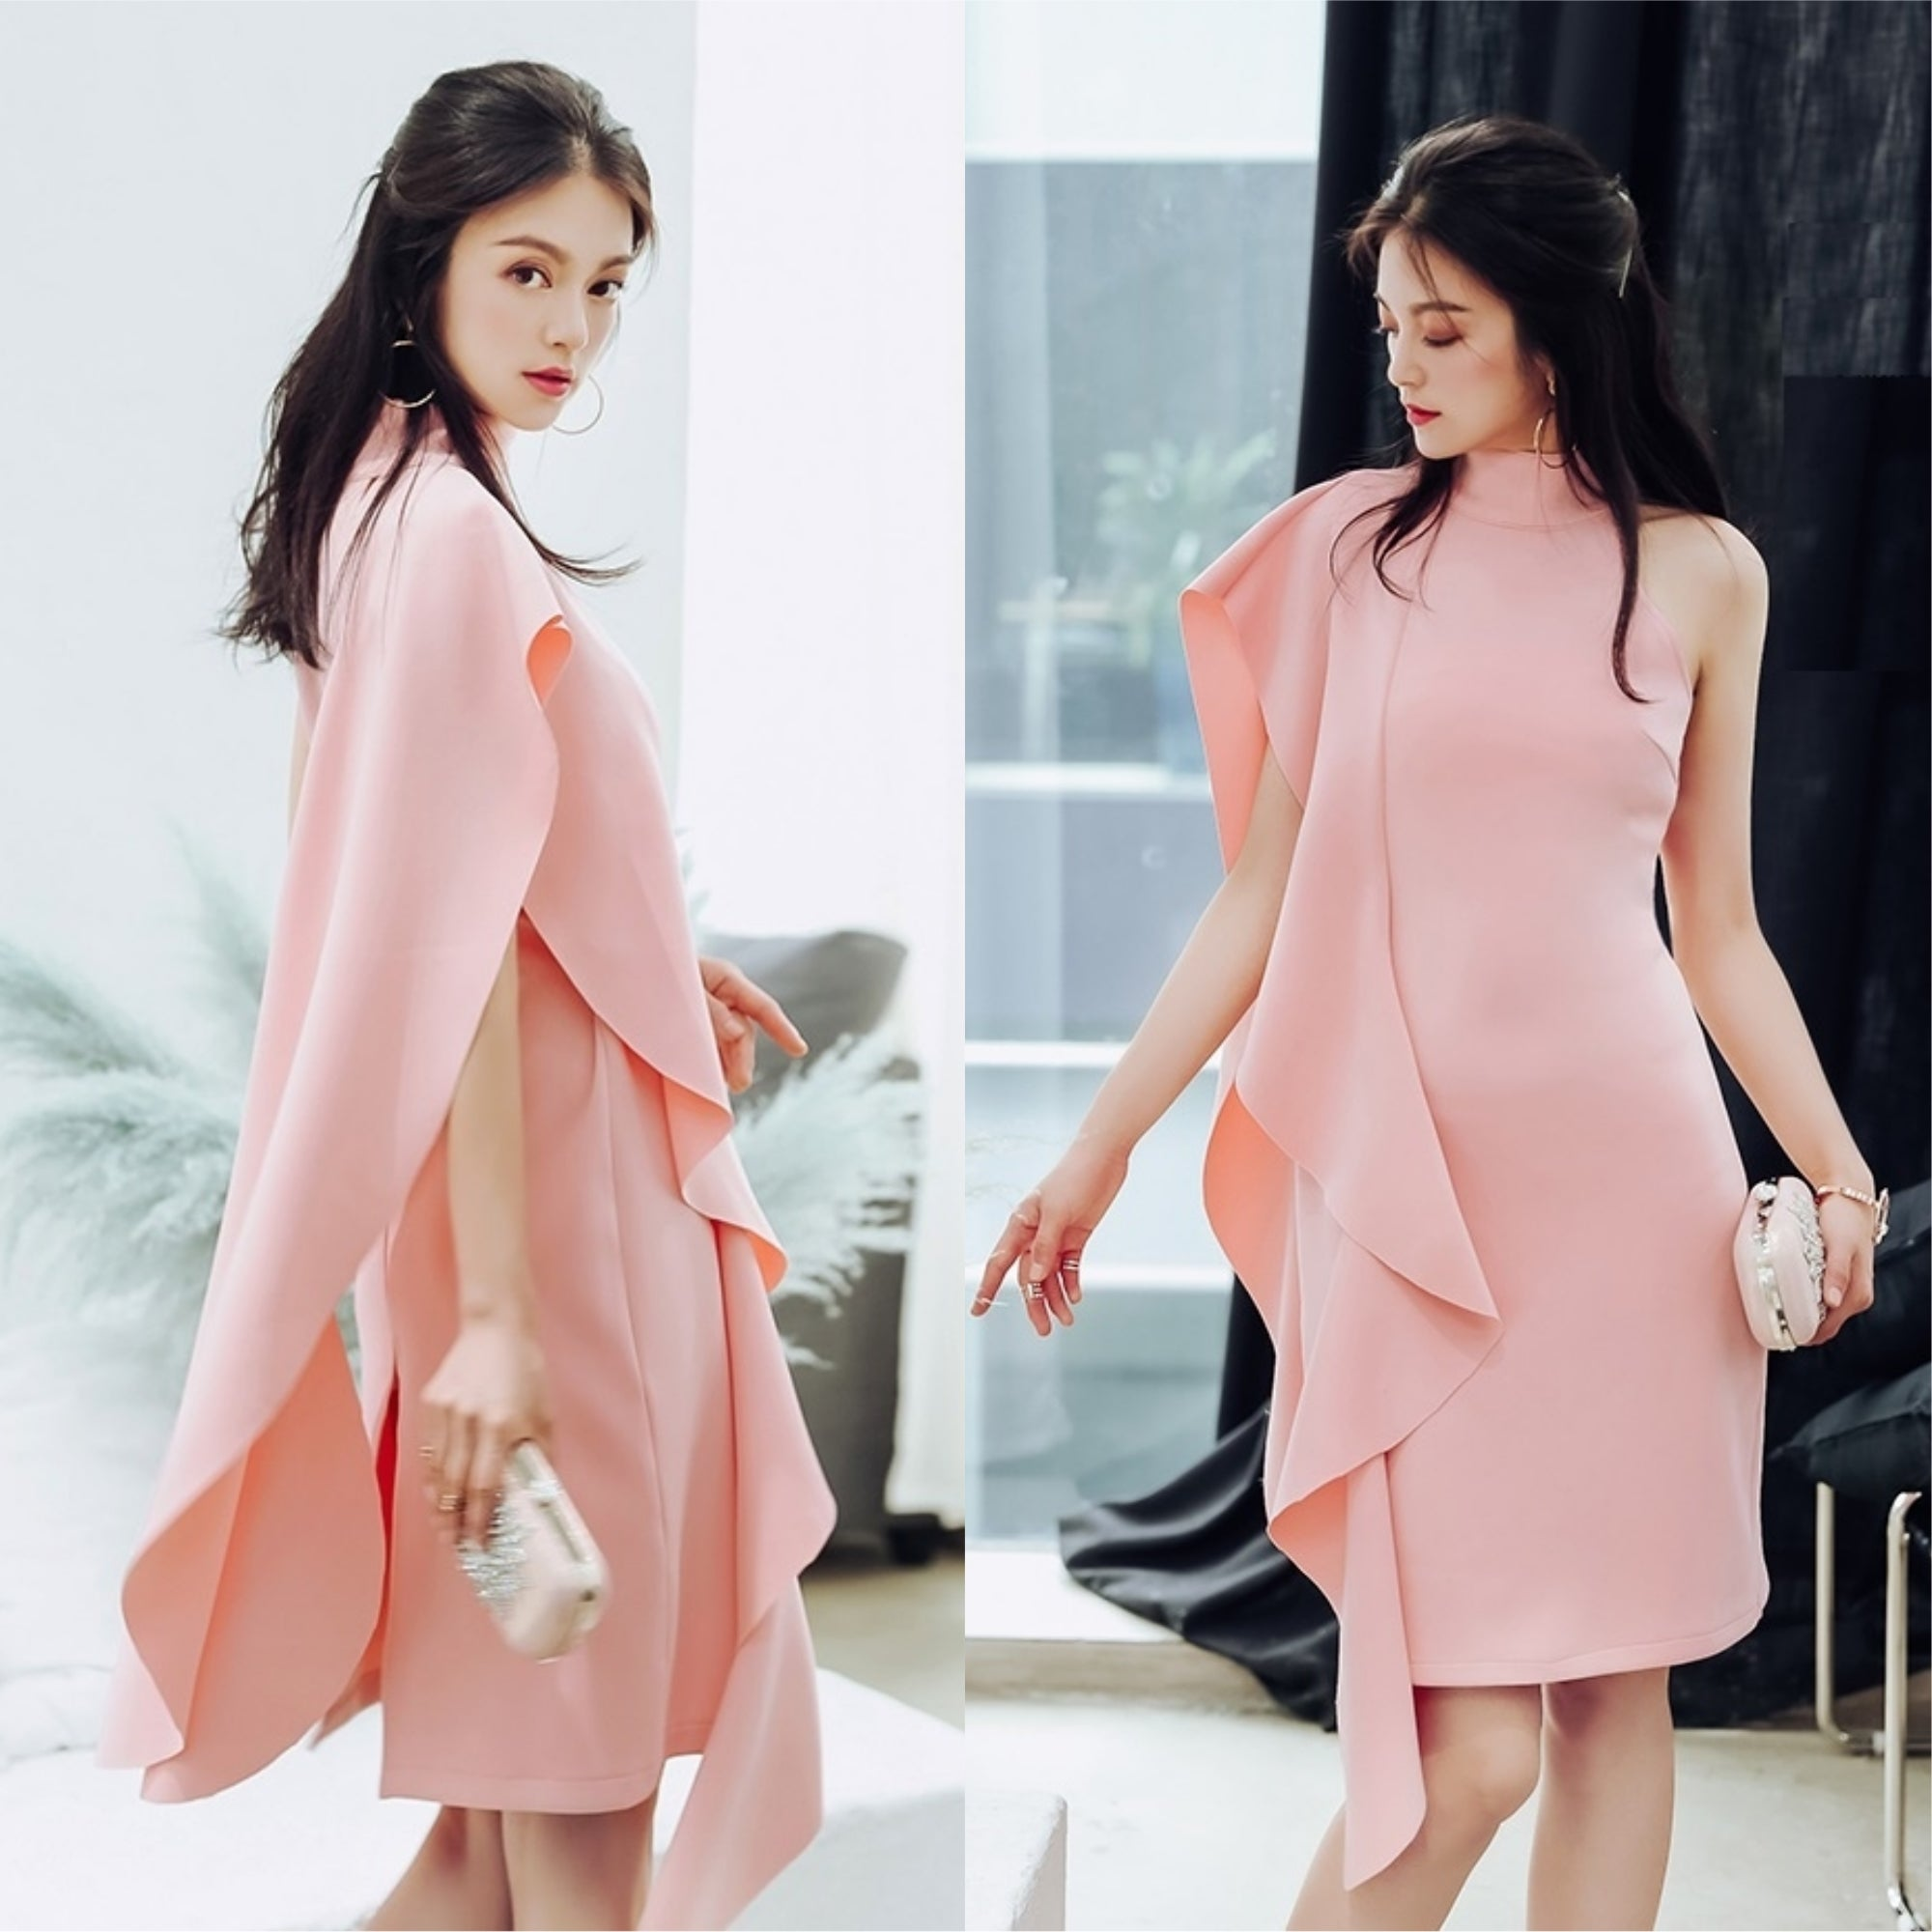 Florencio Sideway Ruffle Dress in Pink [Limited Edition]